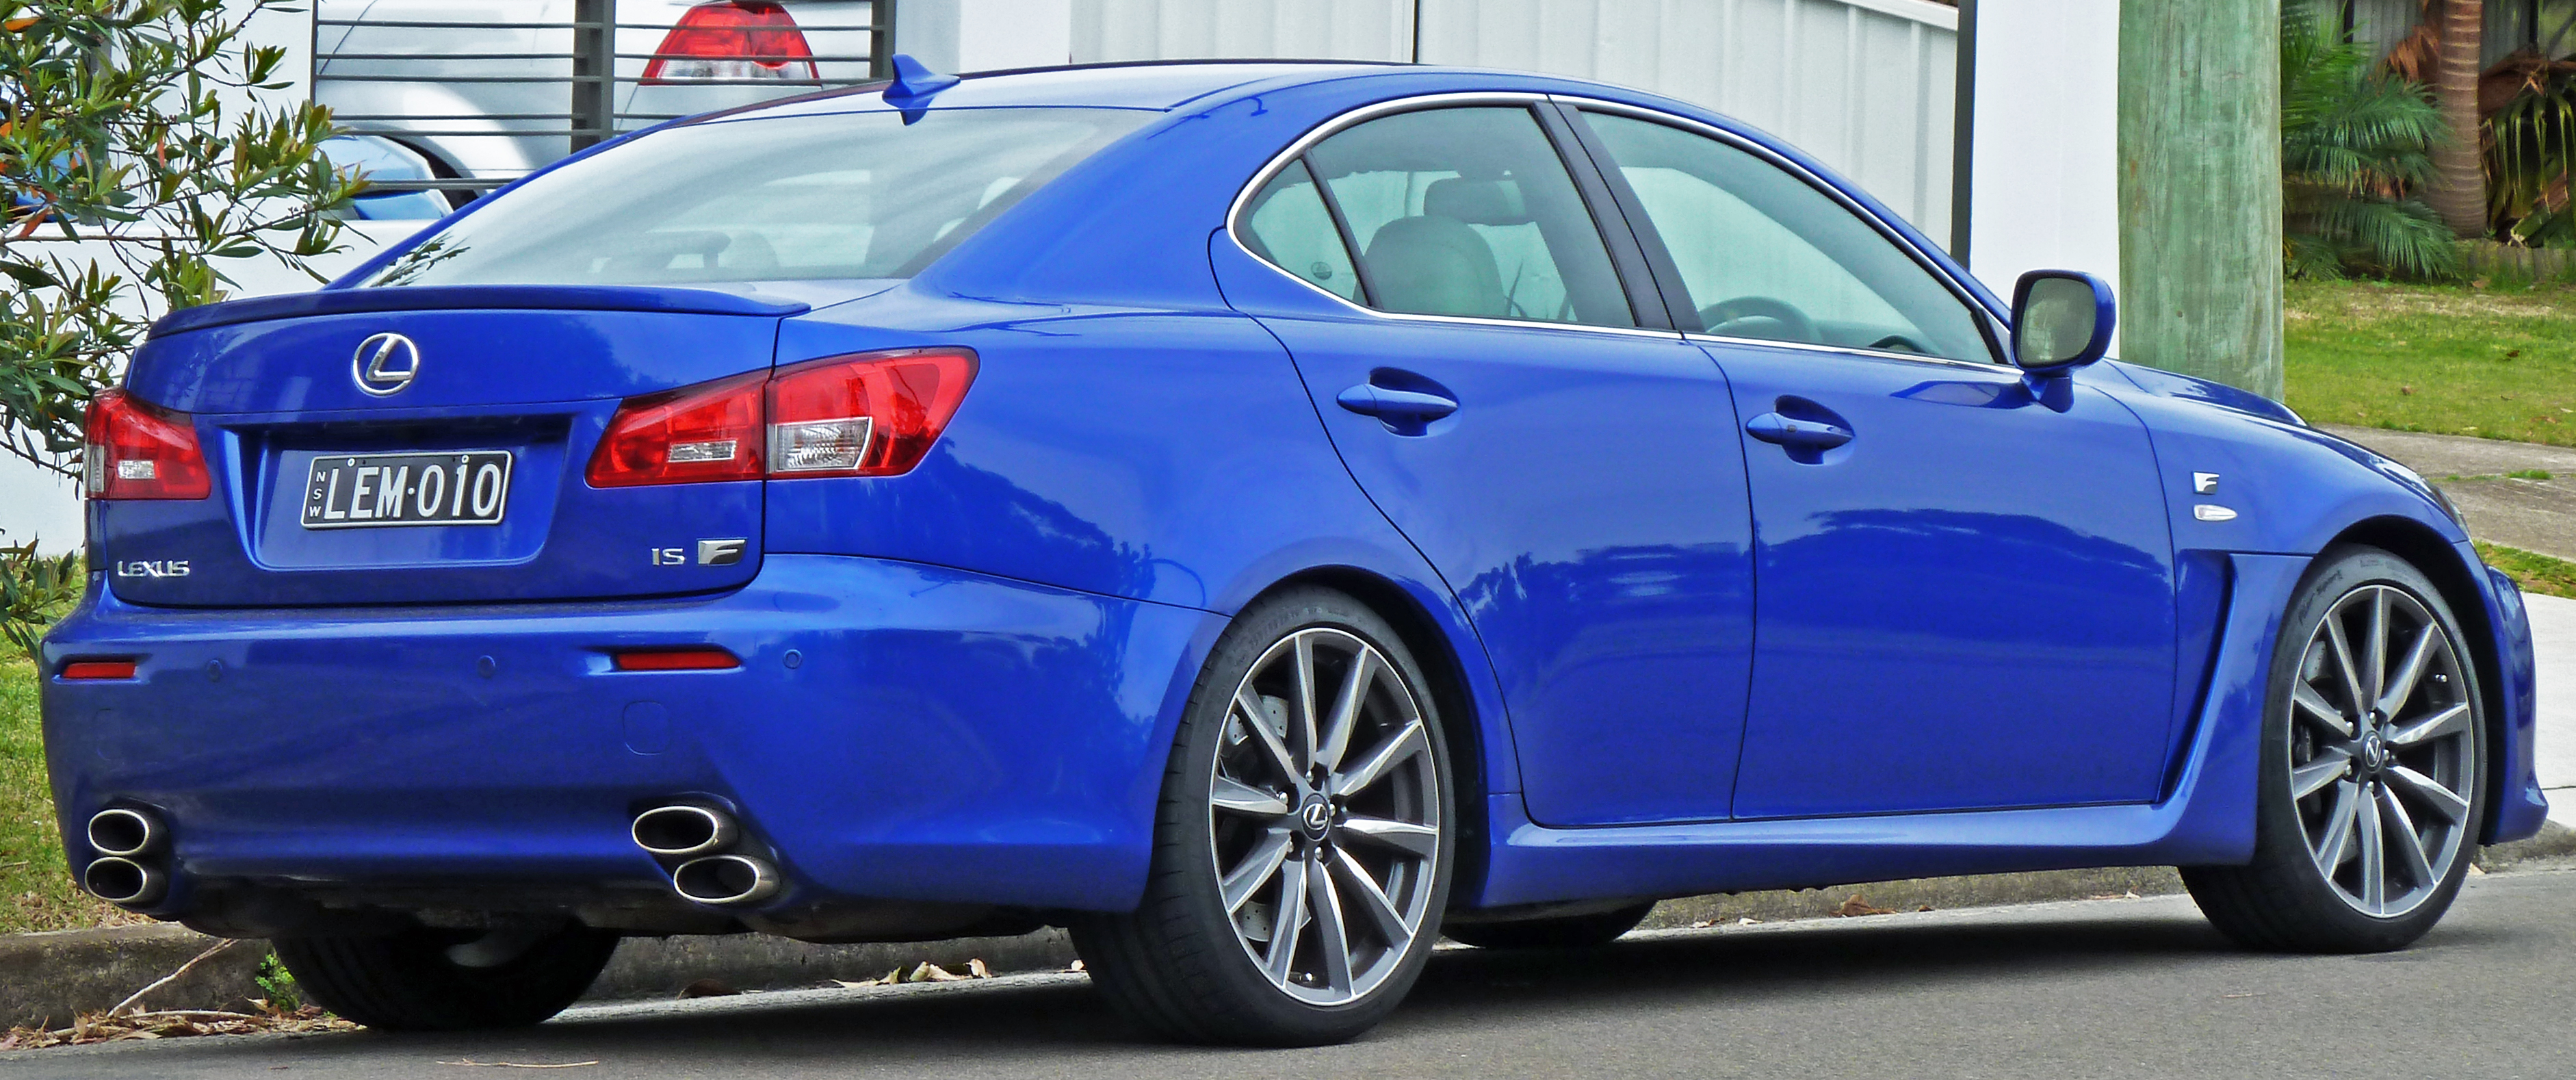 2008 Lexus Is F #11